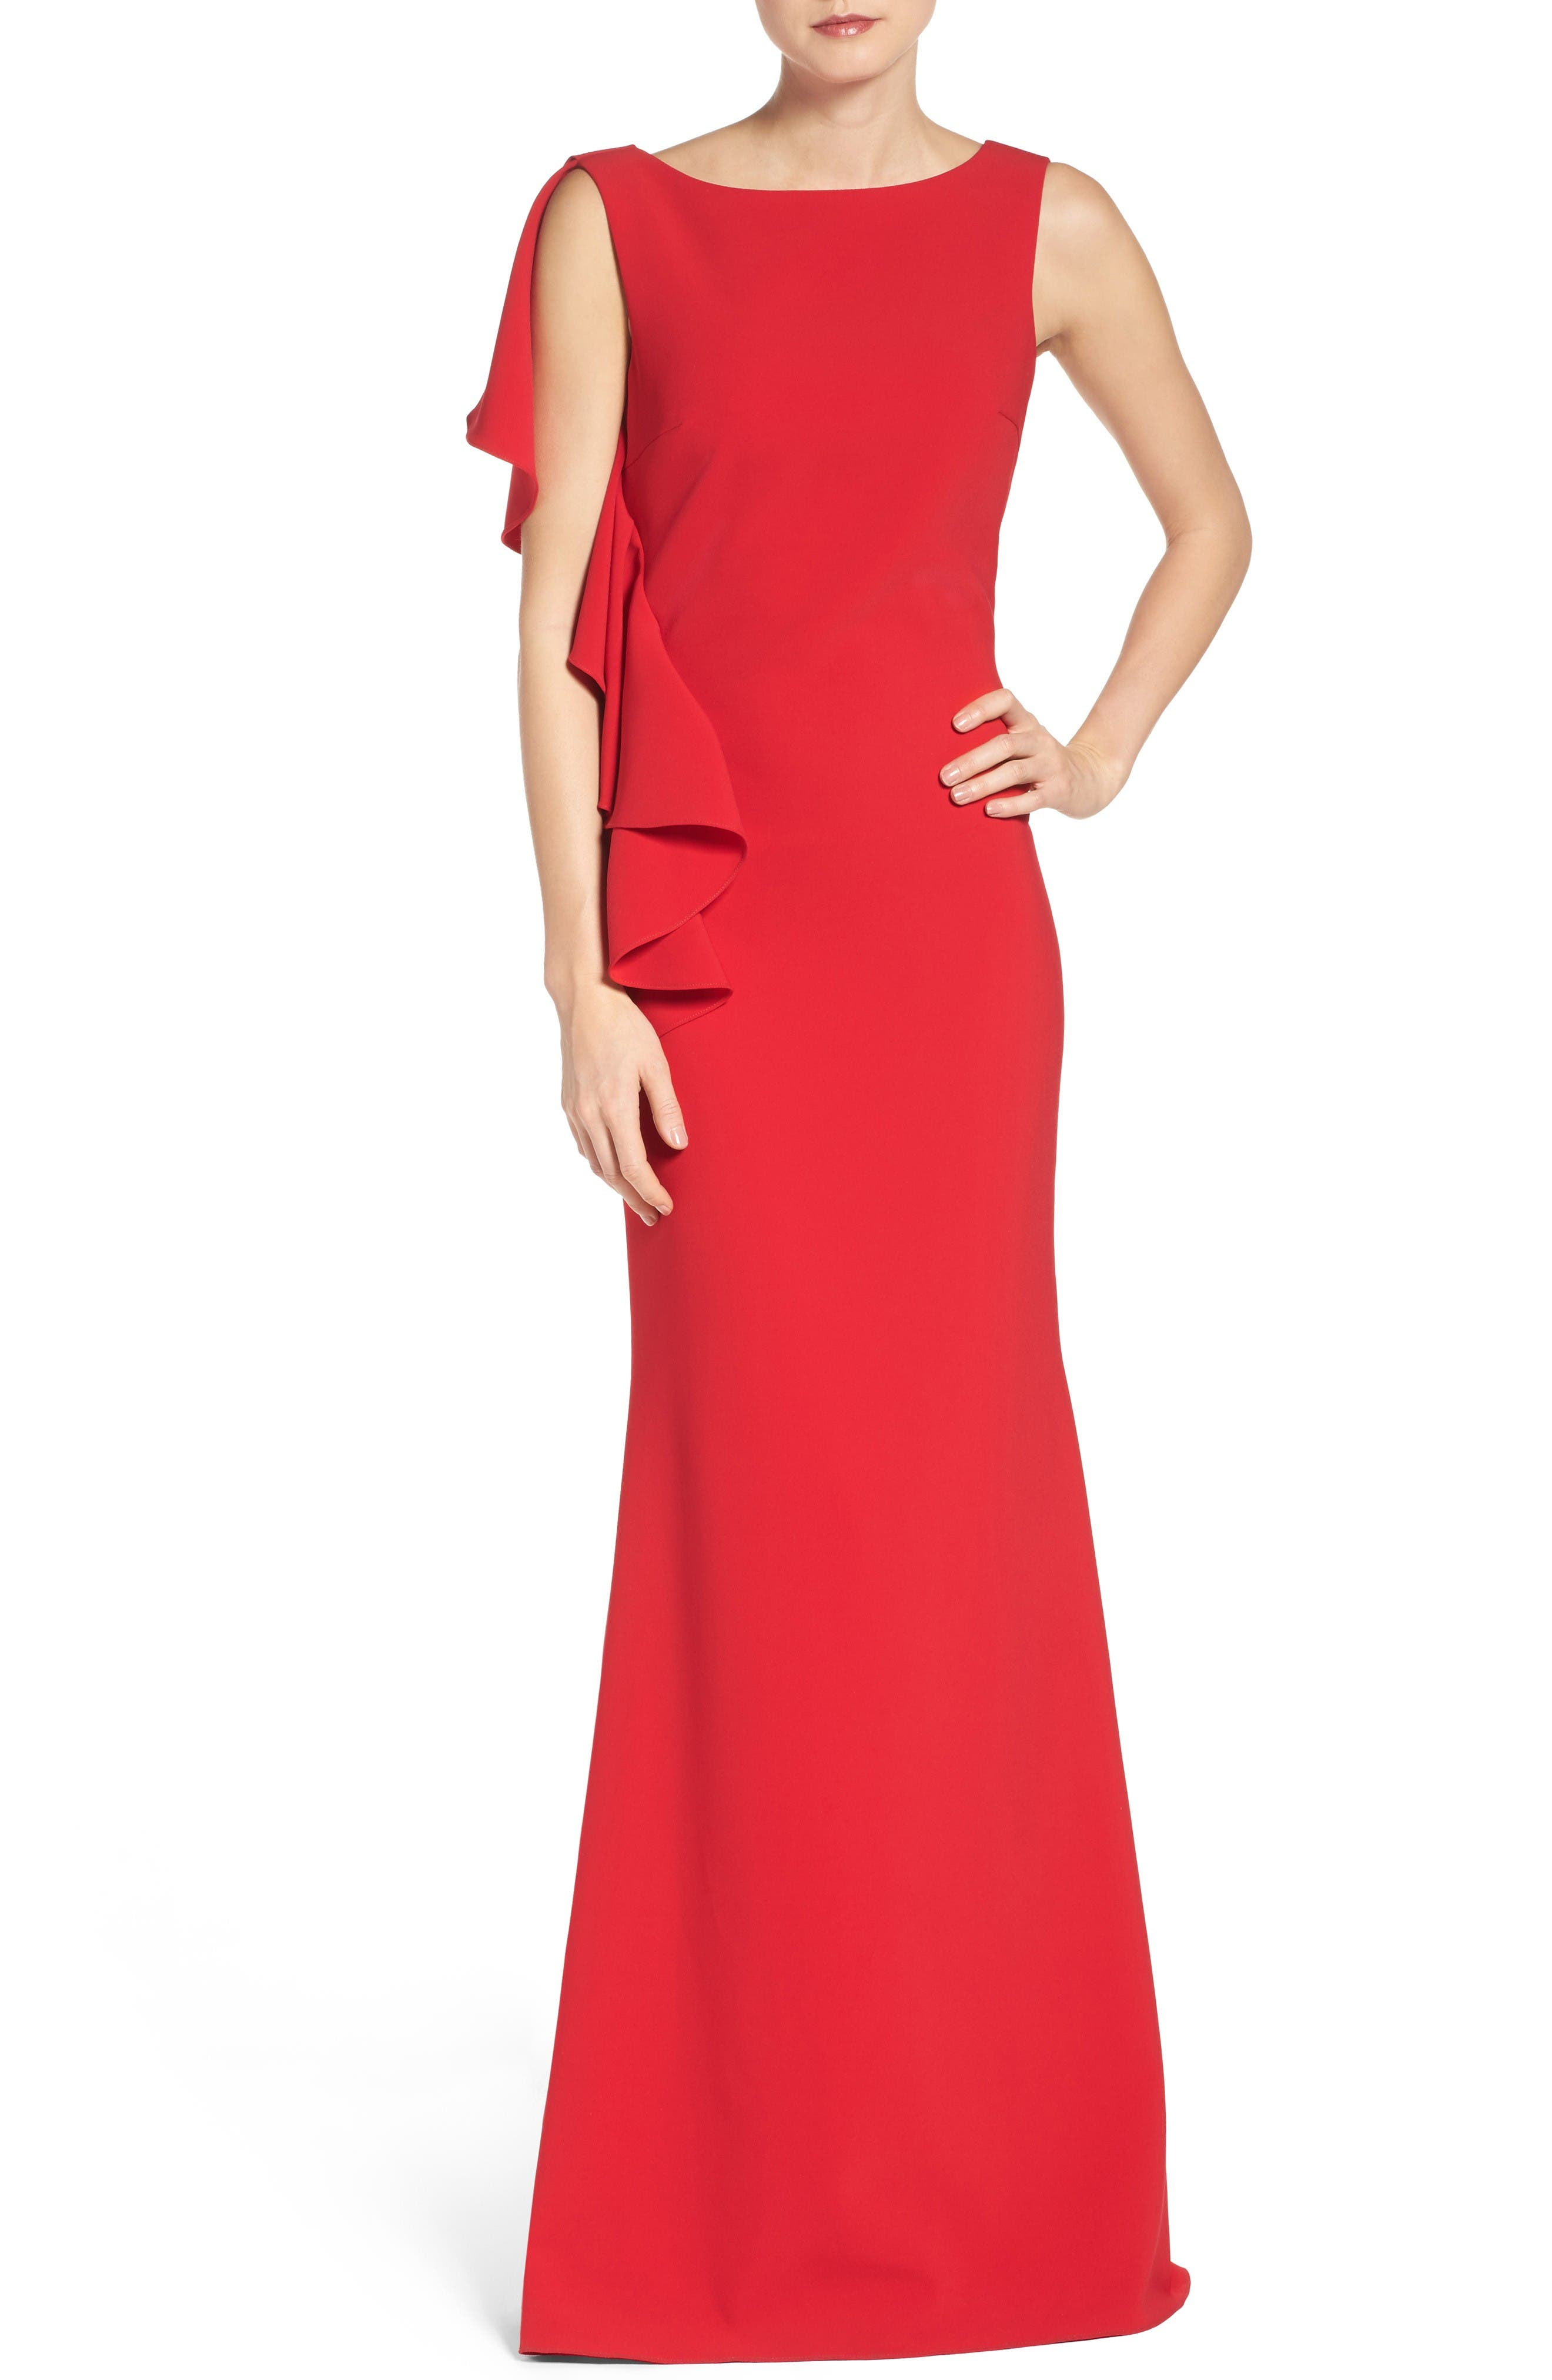 Alternate Image 1 Selected - Badgley Mischka Ruffle Stretch Gown